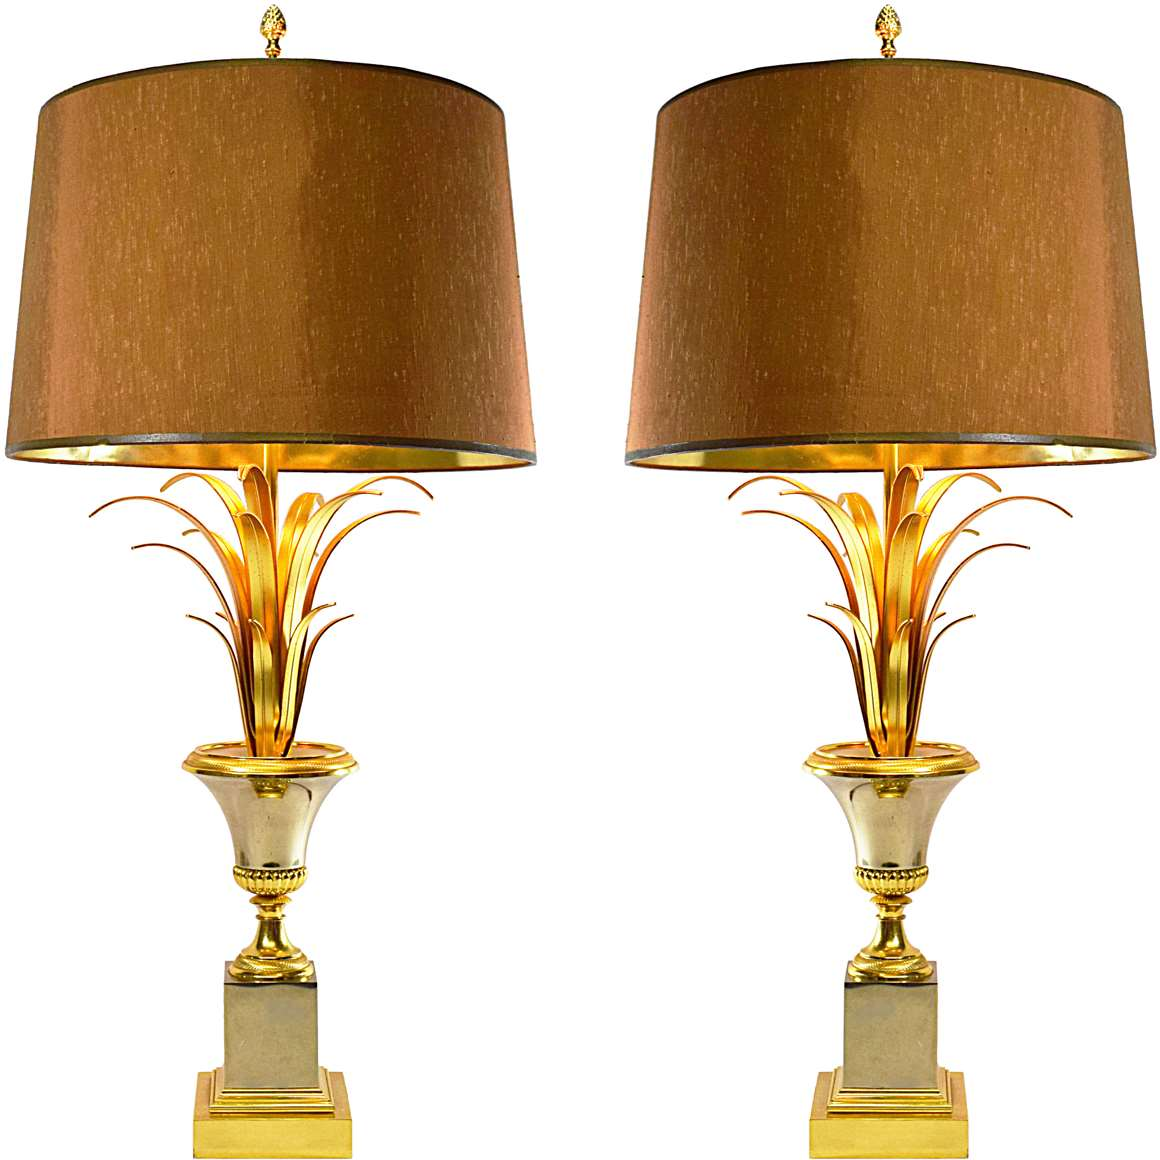 Boulanger Reed Table Lamps - Urn